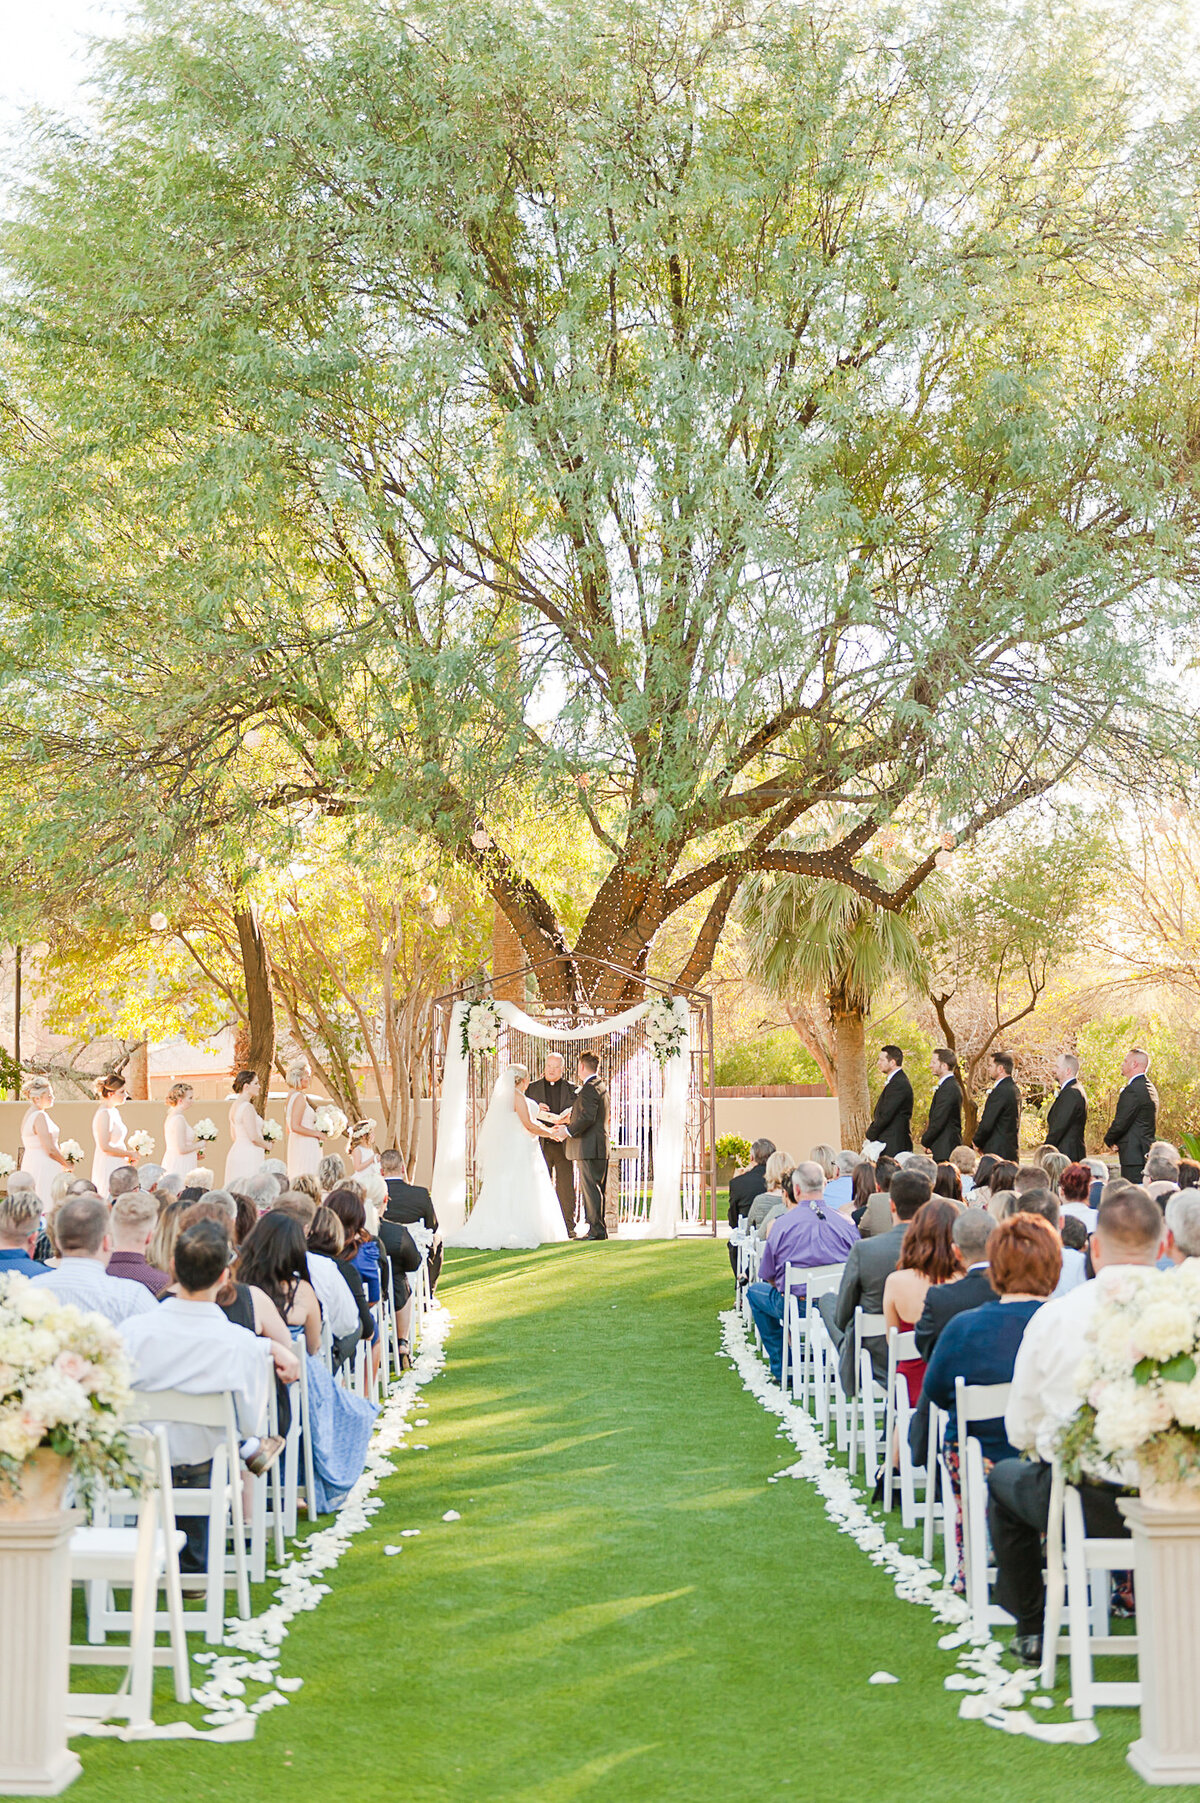 Secret Garden Event Center Wedding Photo by Leslie Ann Photography